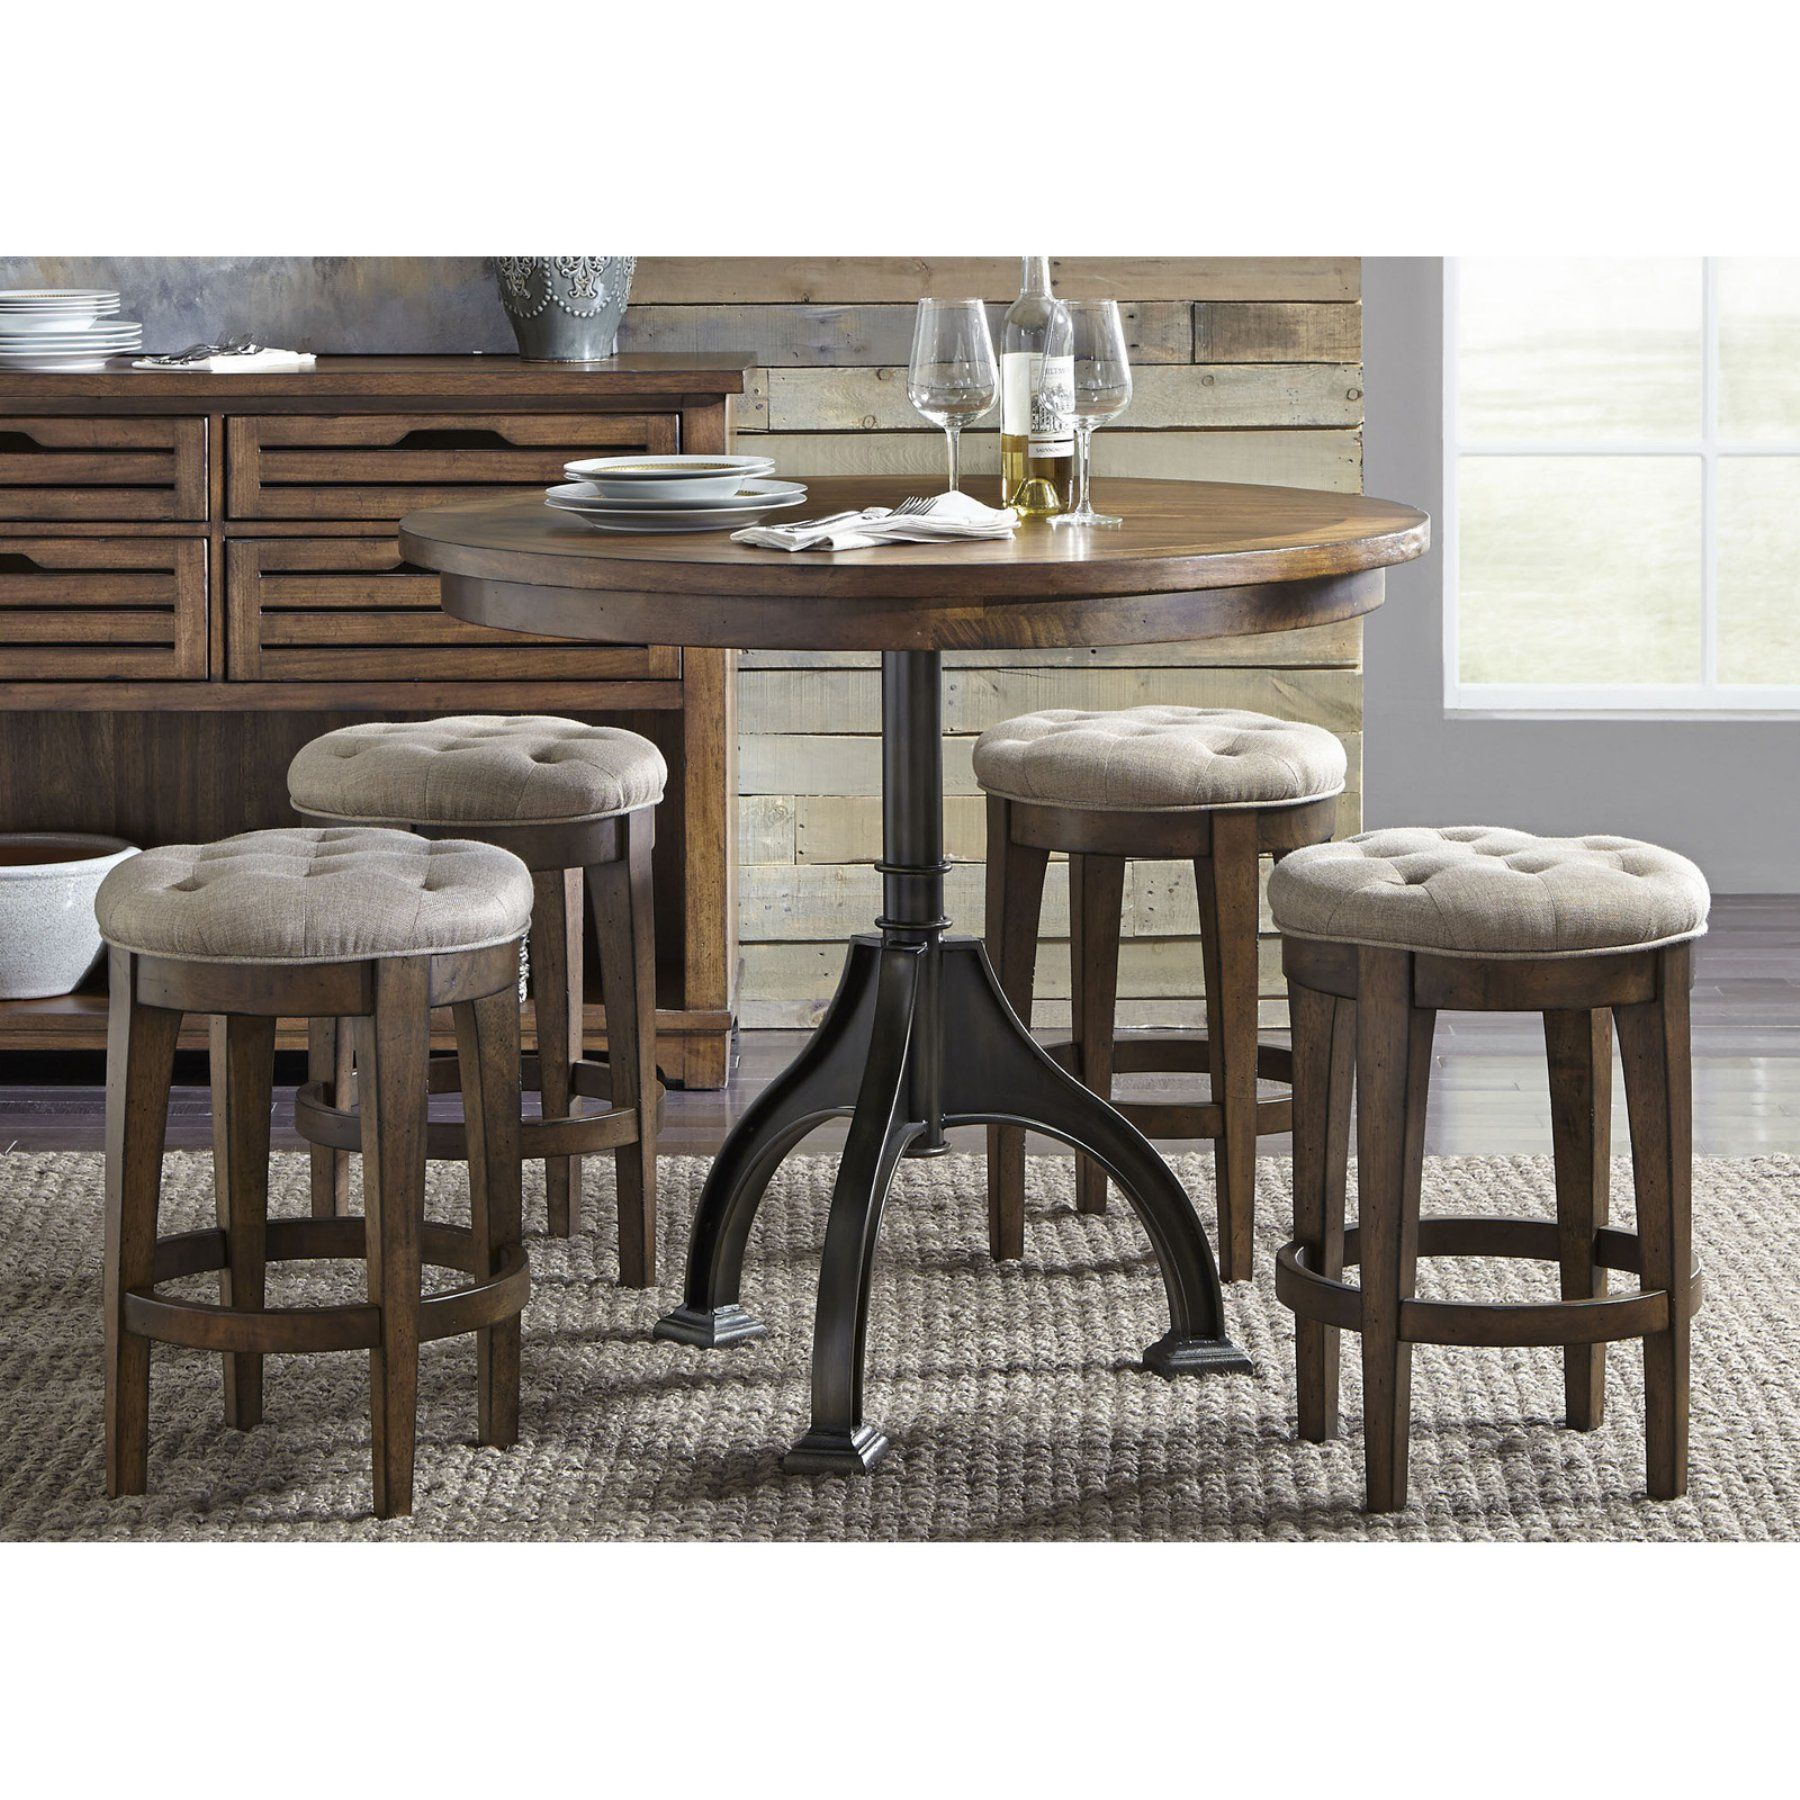 Prime Liberty Furniture Industries Arlington House 5 Piece Counter Caraccident5 Cool Chair Designs And Ideas Caraccident5Info